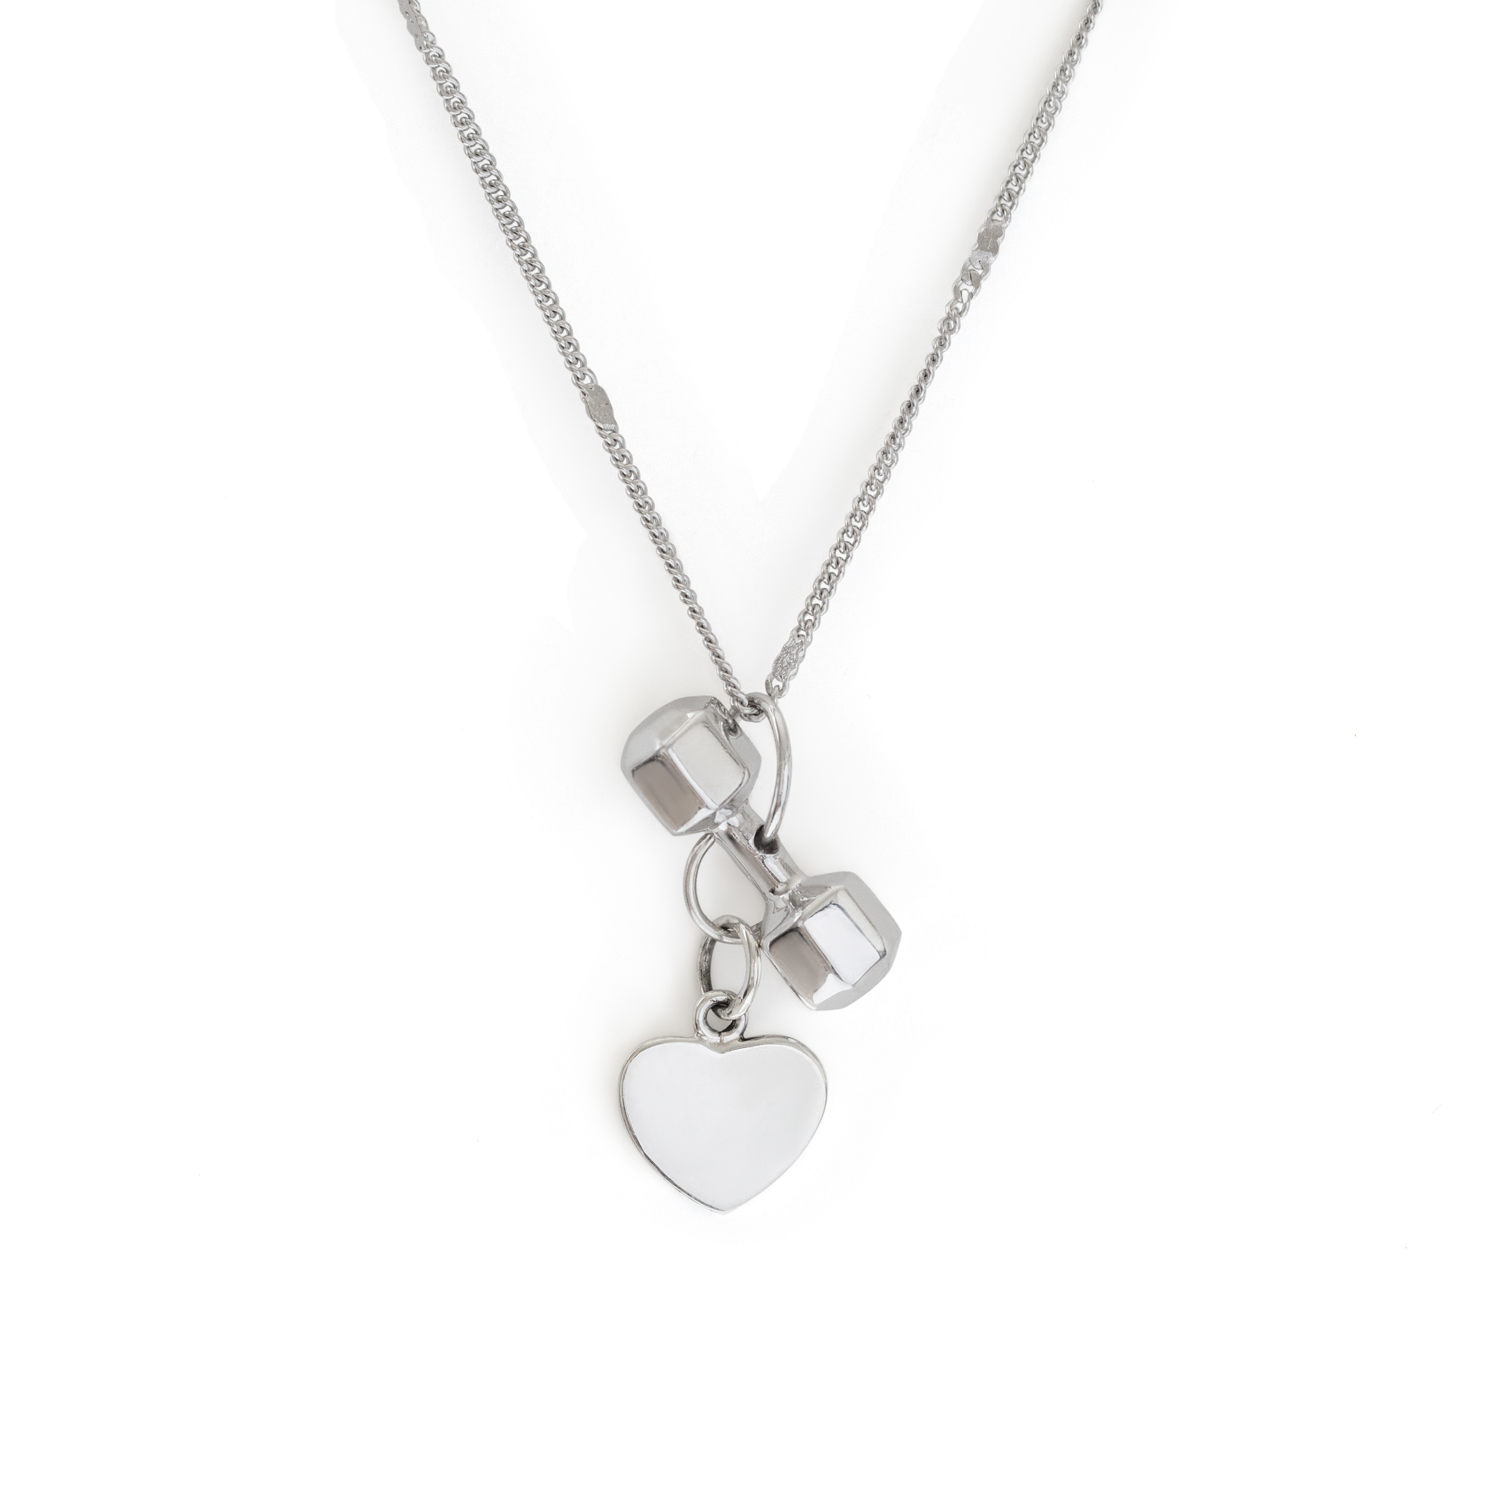 7 Sided Dumbbell With A Heart Charm Sterling Silver